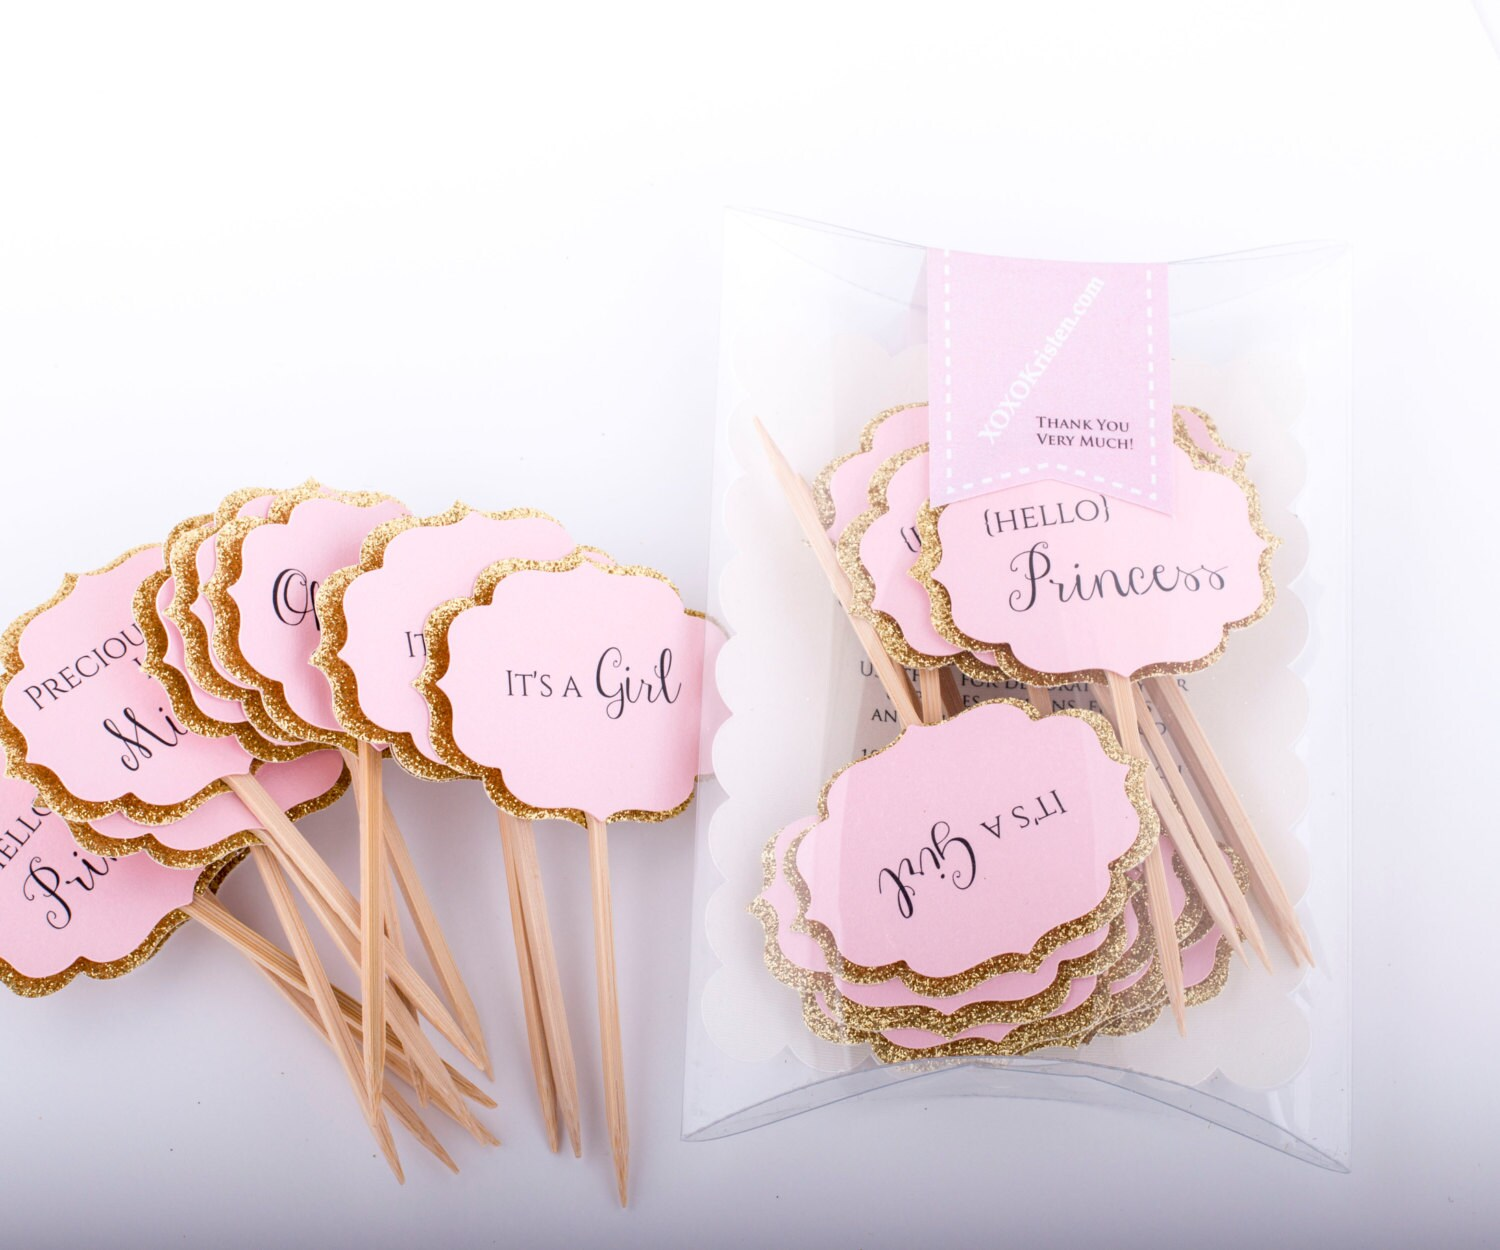 Captivating Baby Shower Cupcake Toppers Gold And Pink Decorations. Pink And Gold Baby  Shower Cupcake Toppers. Baby Girl Shower Decoration 12CT